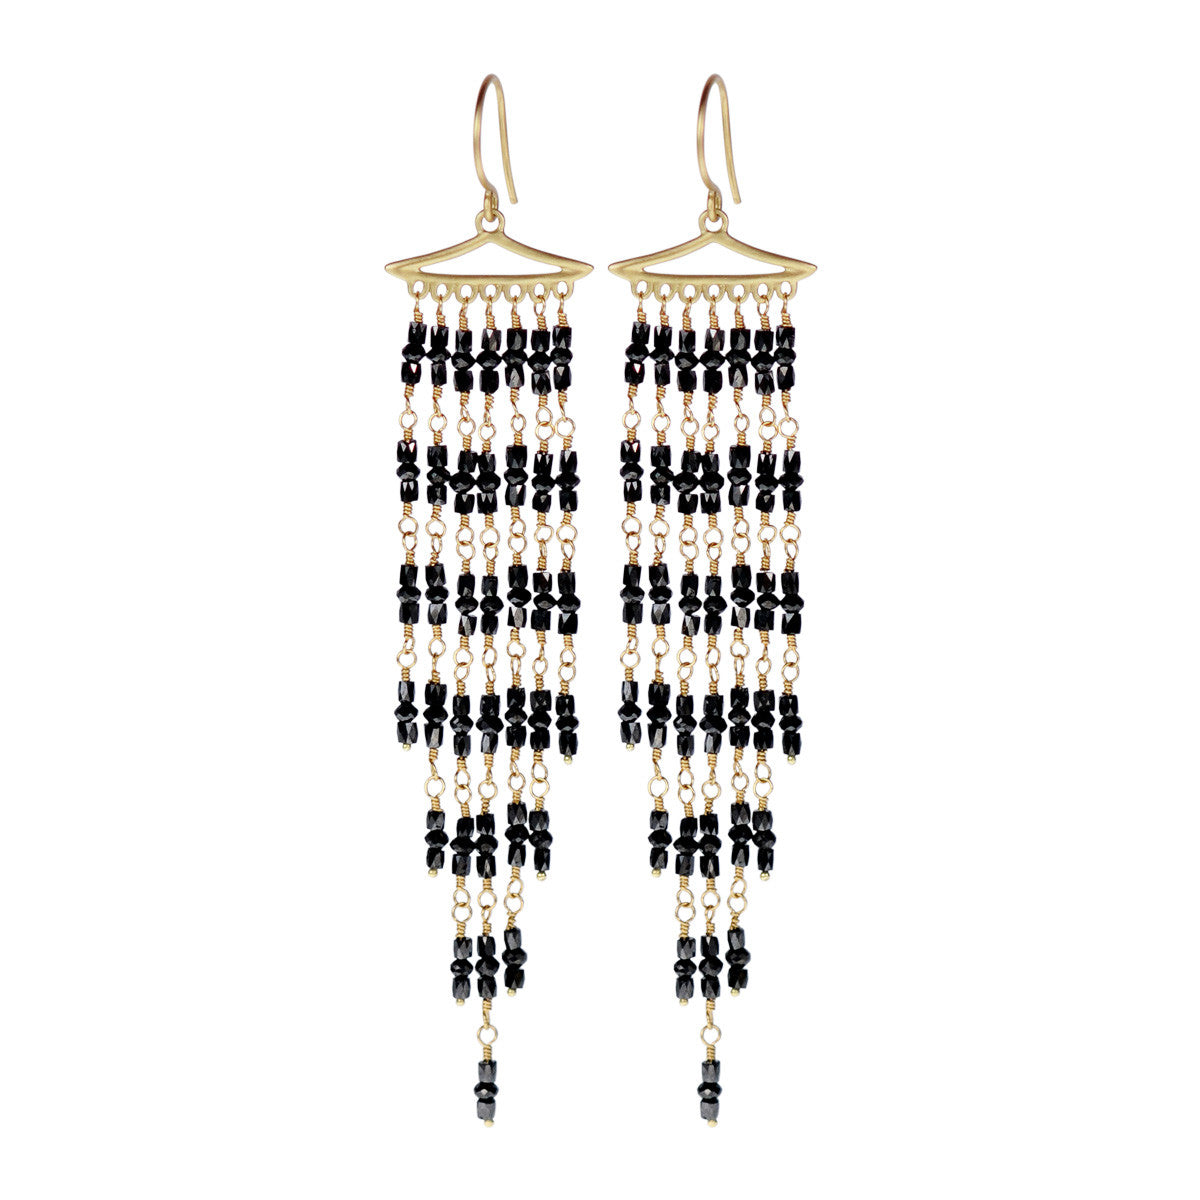 18K Gold Long Graduated Black Diamond Fringe Earrings